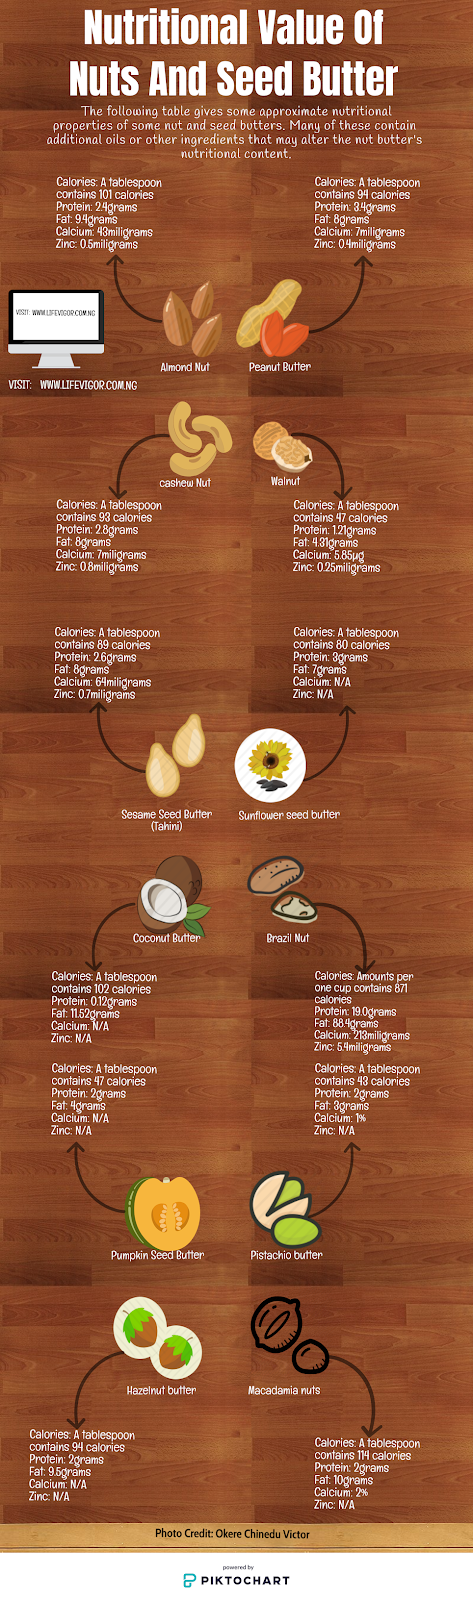 Nutritional value of nut and seed butter